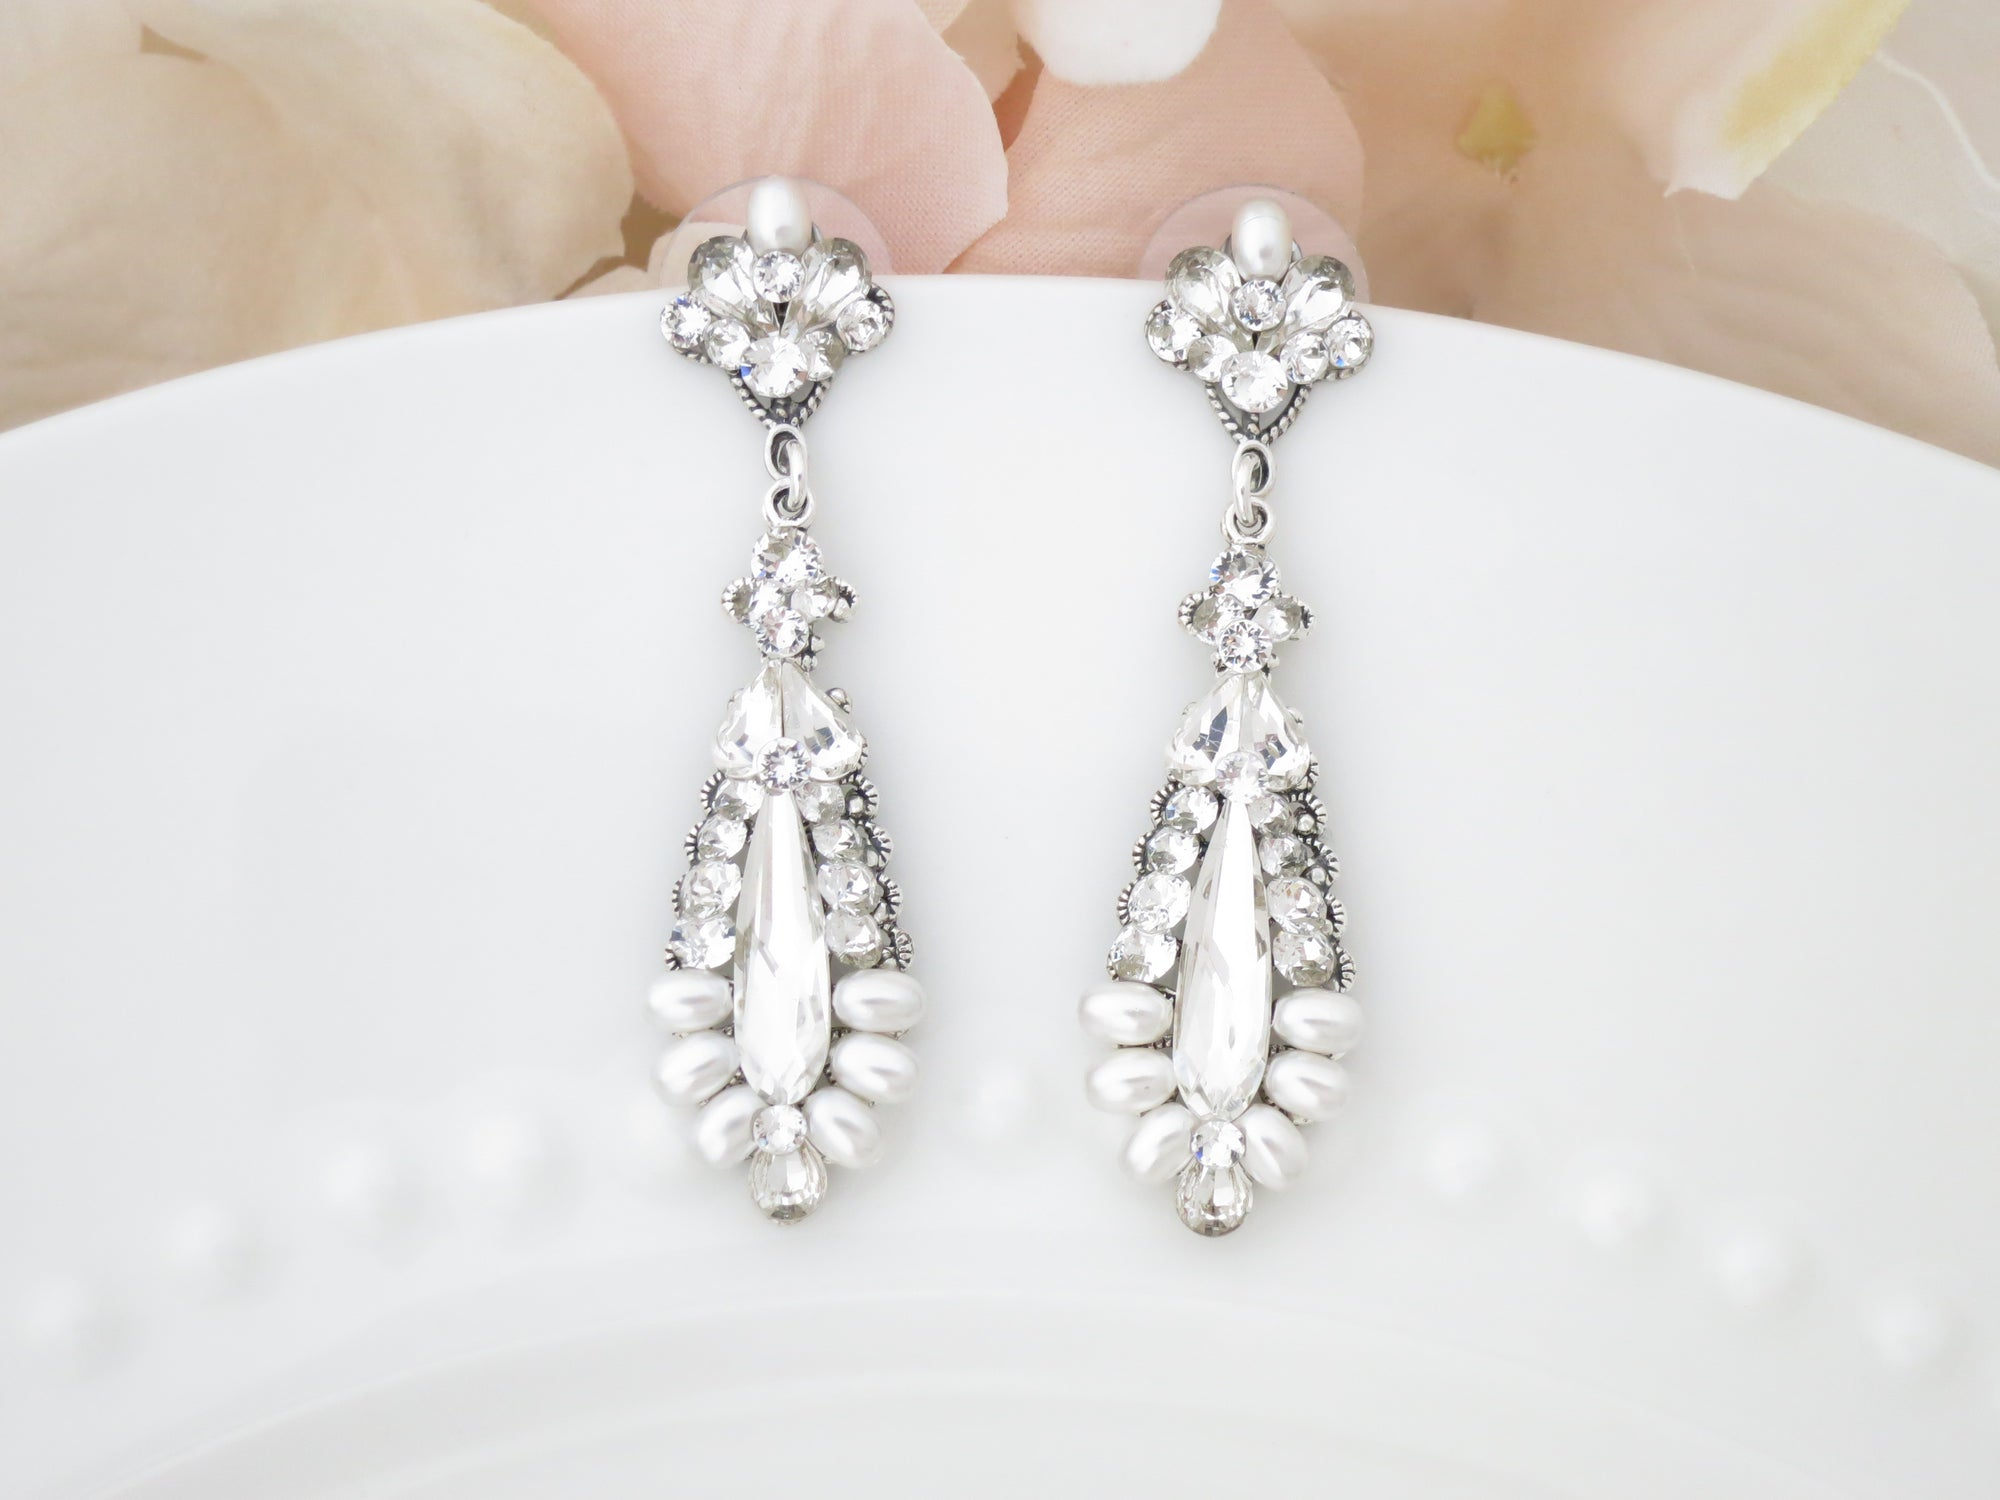 SLOANE:  Crystal Raindrop Bridal Earrings - BlingBaddaBoom - Minimalist, Vintage, Modern Wedding and Bridal Jewelry